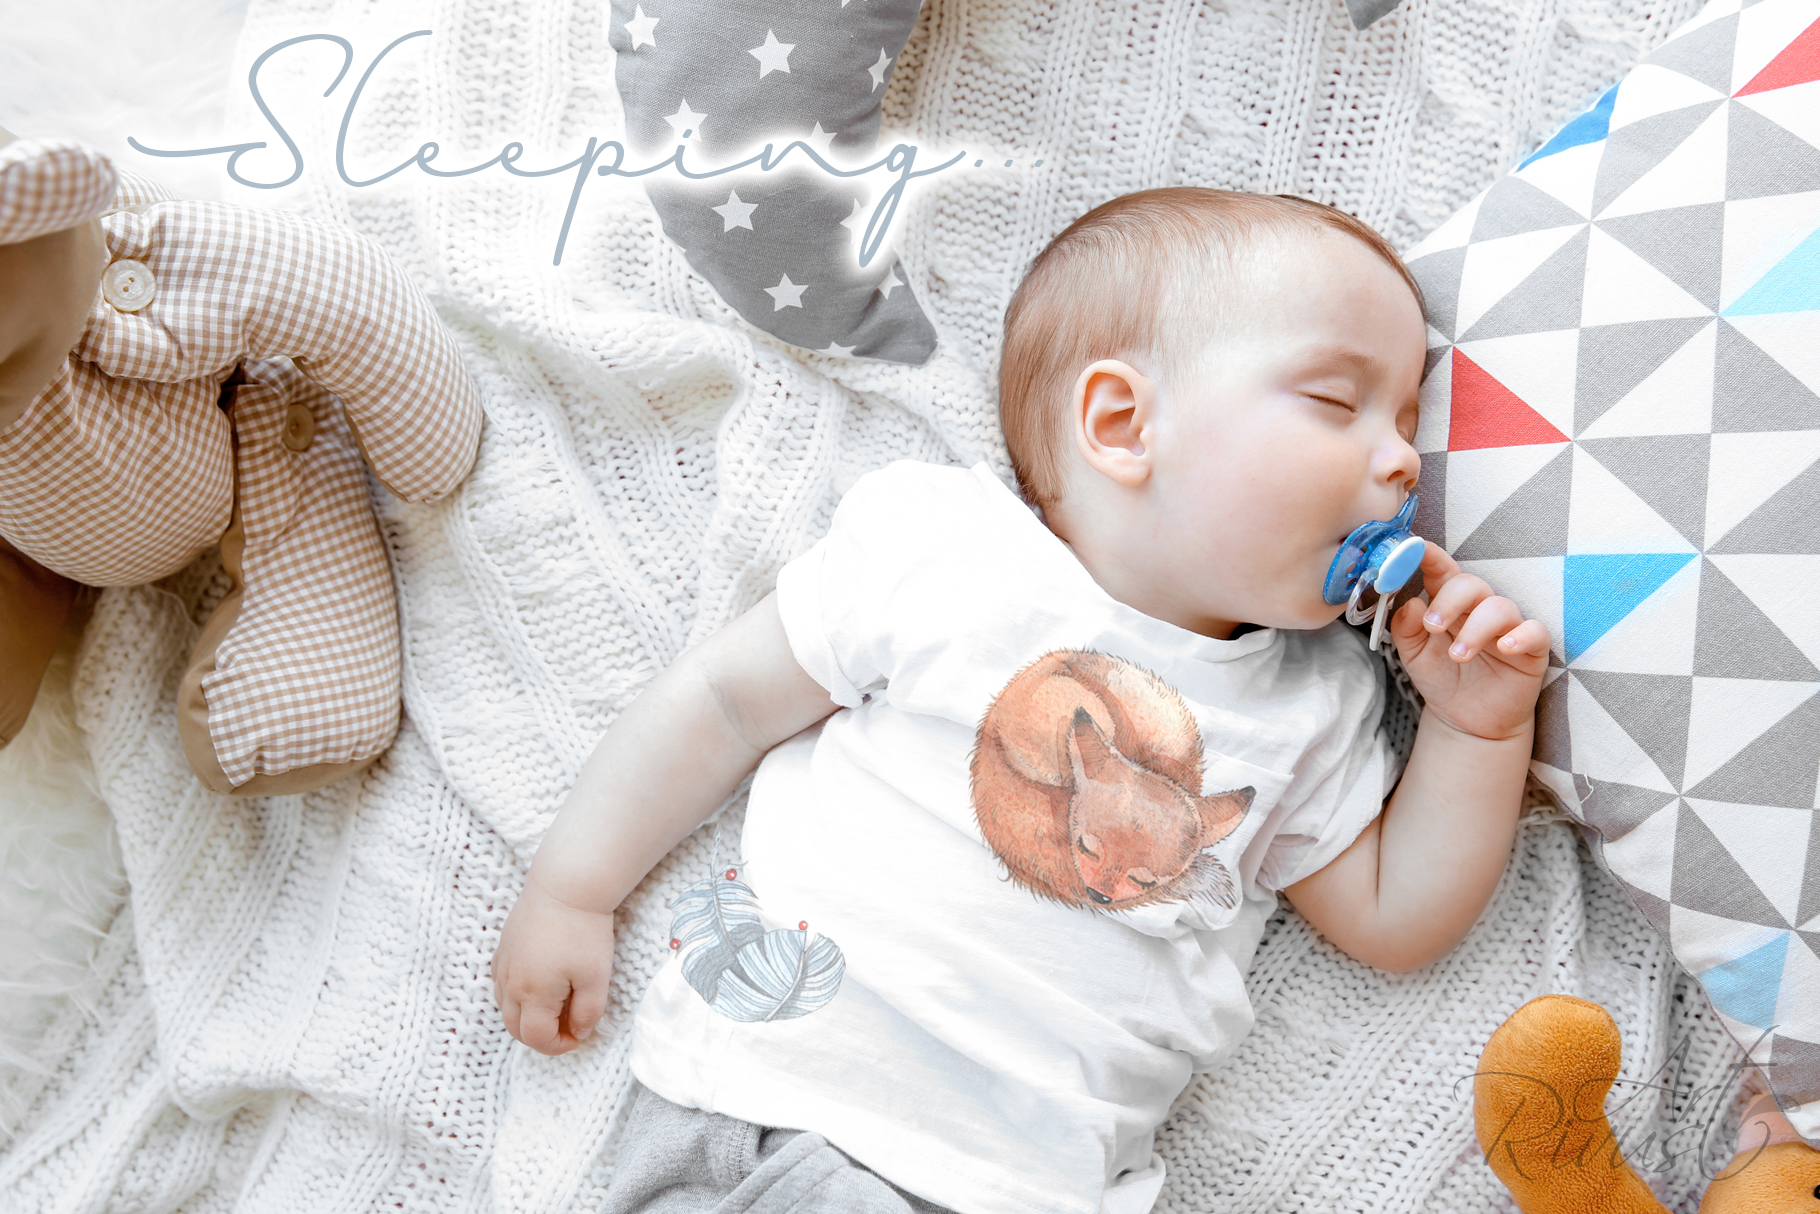 Cute sleeping baby animals watercolor clipart kit example image 10